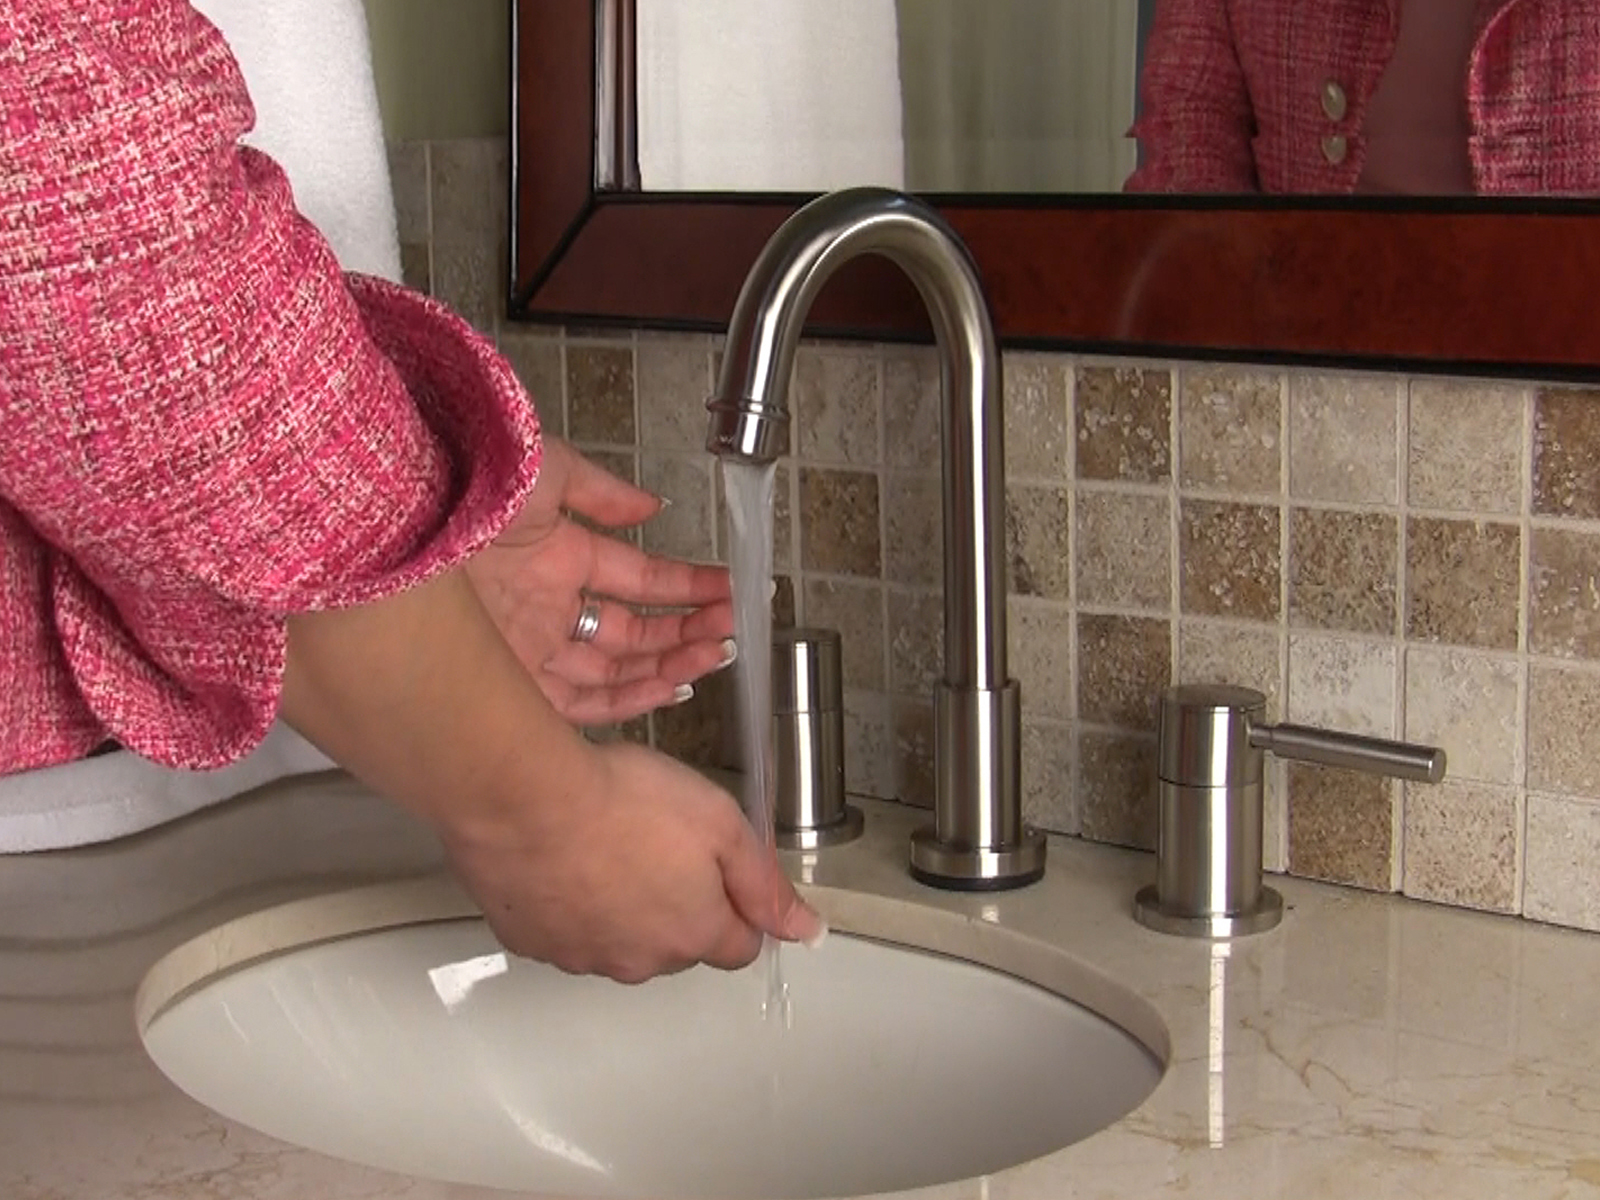 New Faucet Can Sense Your Presence: Fontaine to Launch Sensa Field ...